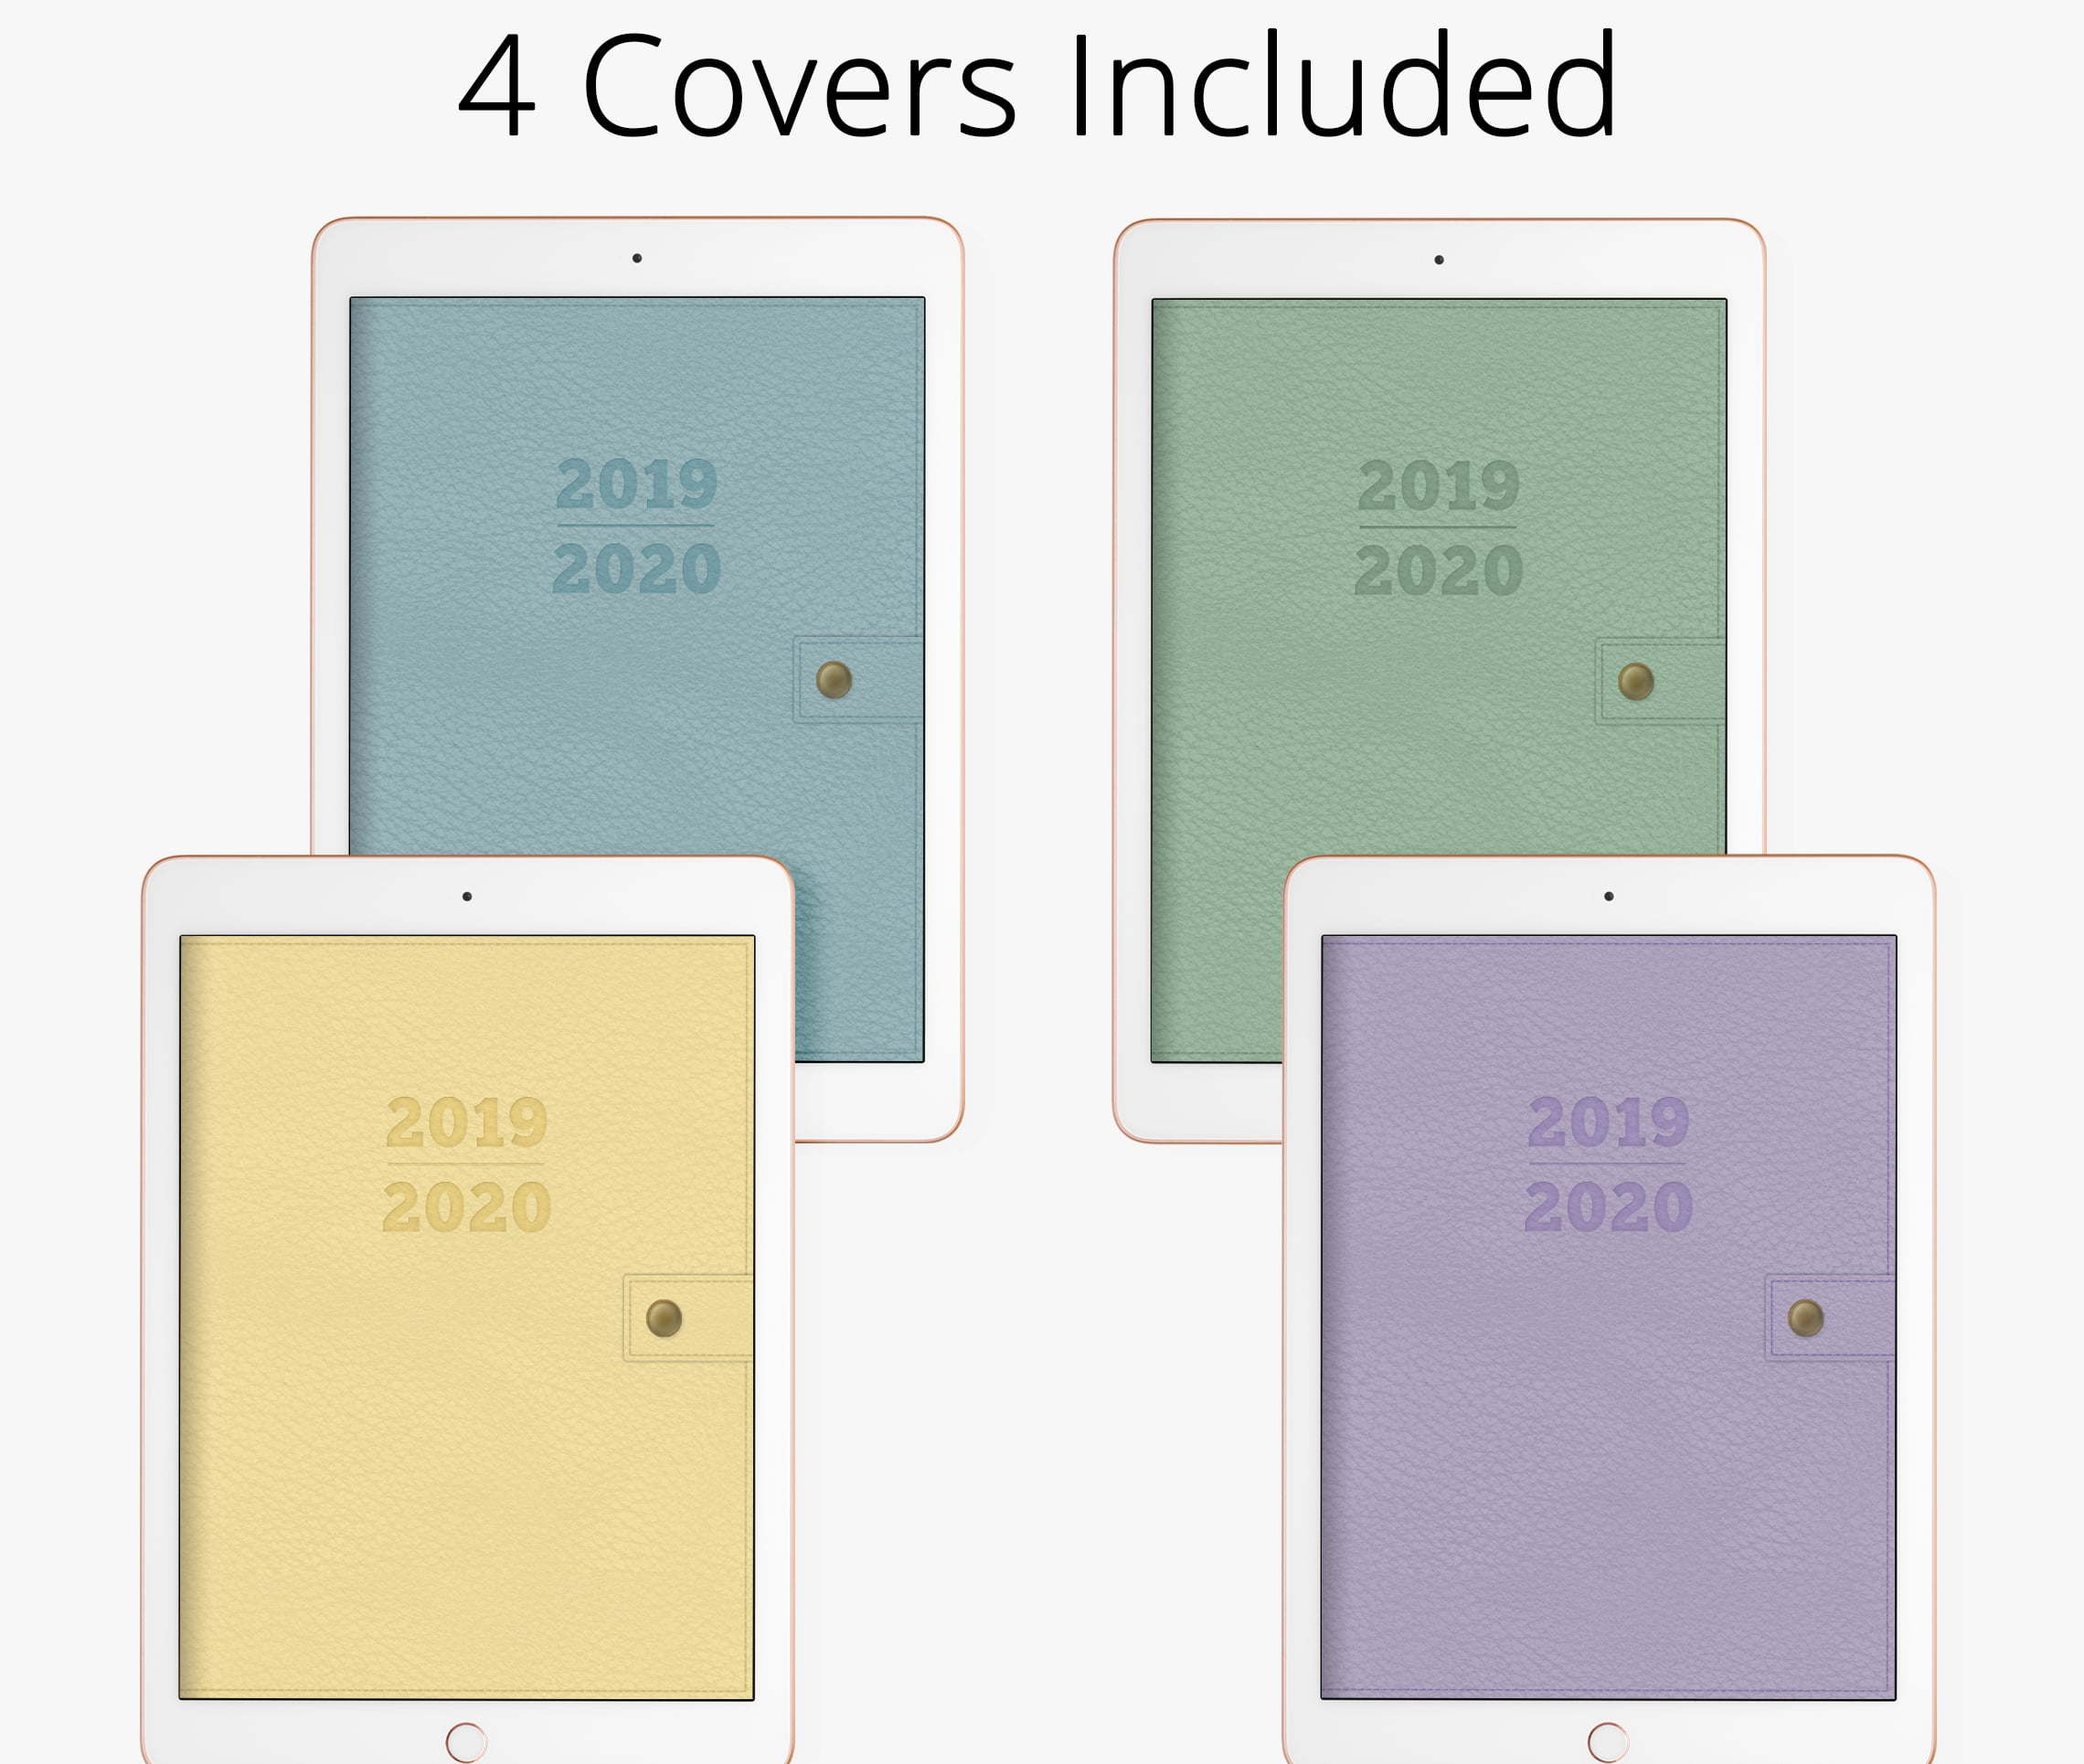 planner covers in digital planner for goodnotes, notability, xodo, ipad planner & android, digital notebook cover journal